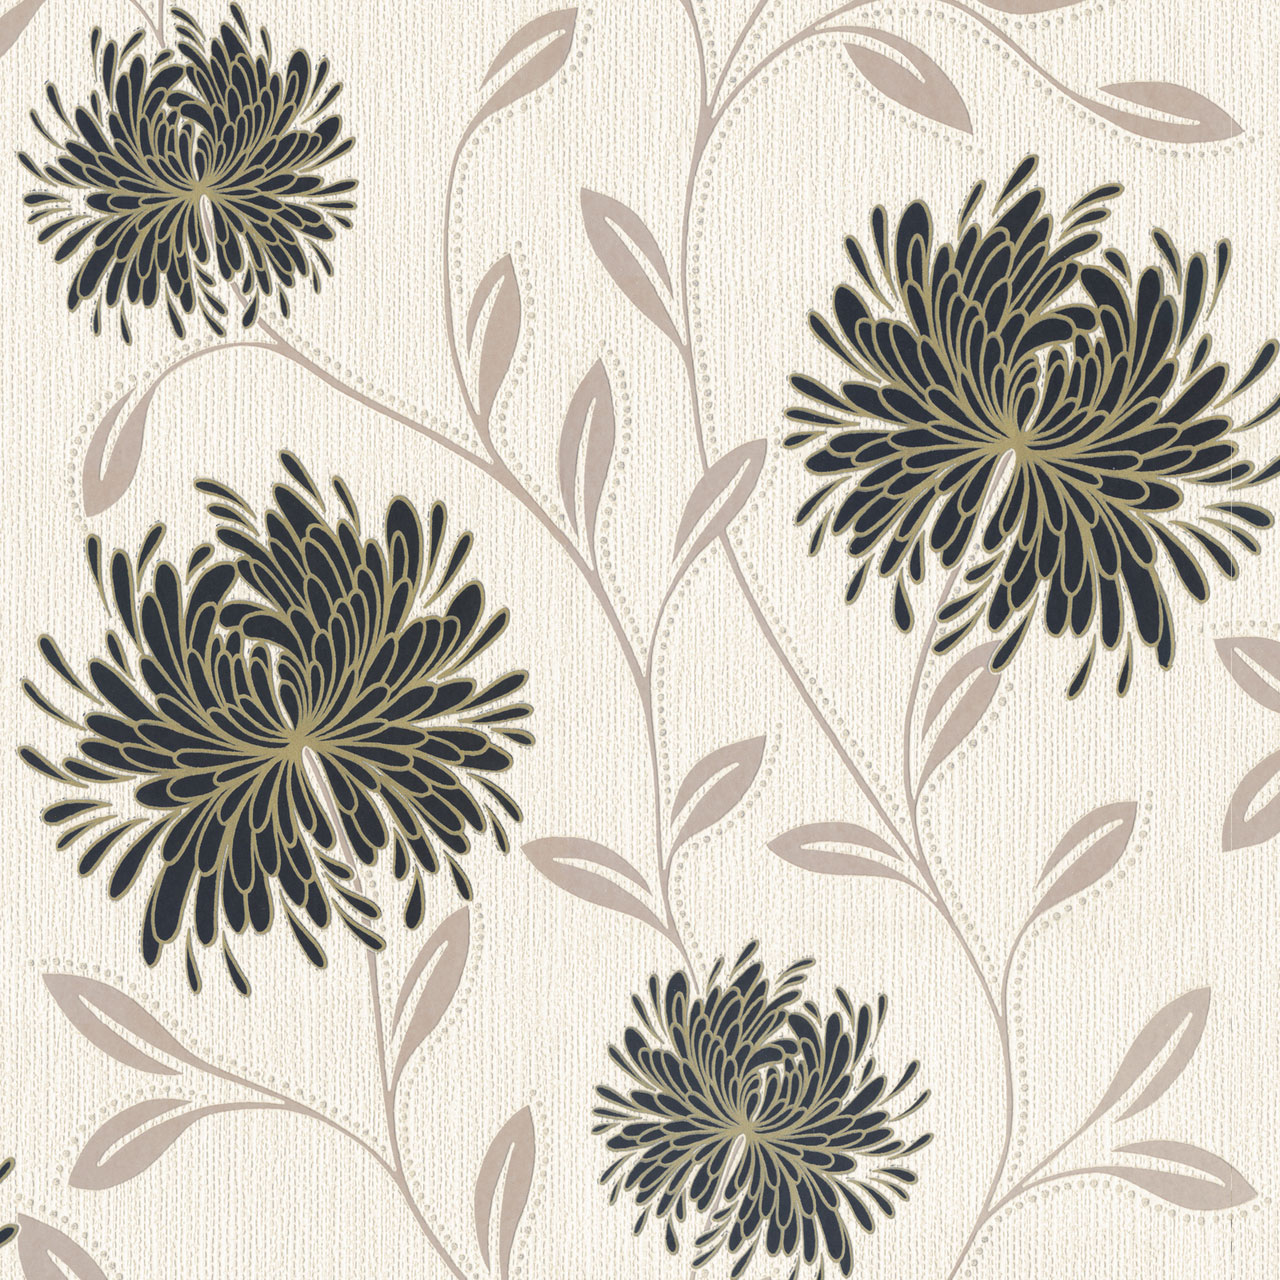 Flower Floral Luxury Textured Embossed Vinyl Wallpaper Glitter Cream Black Gold